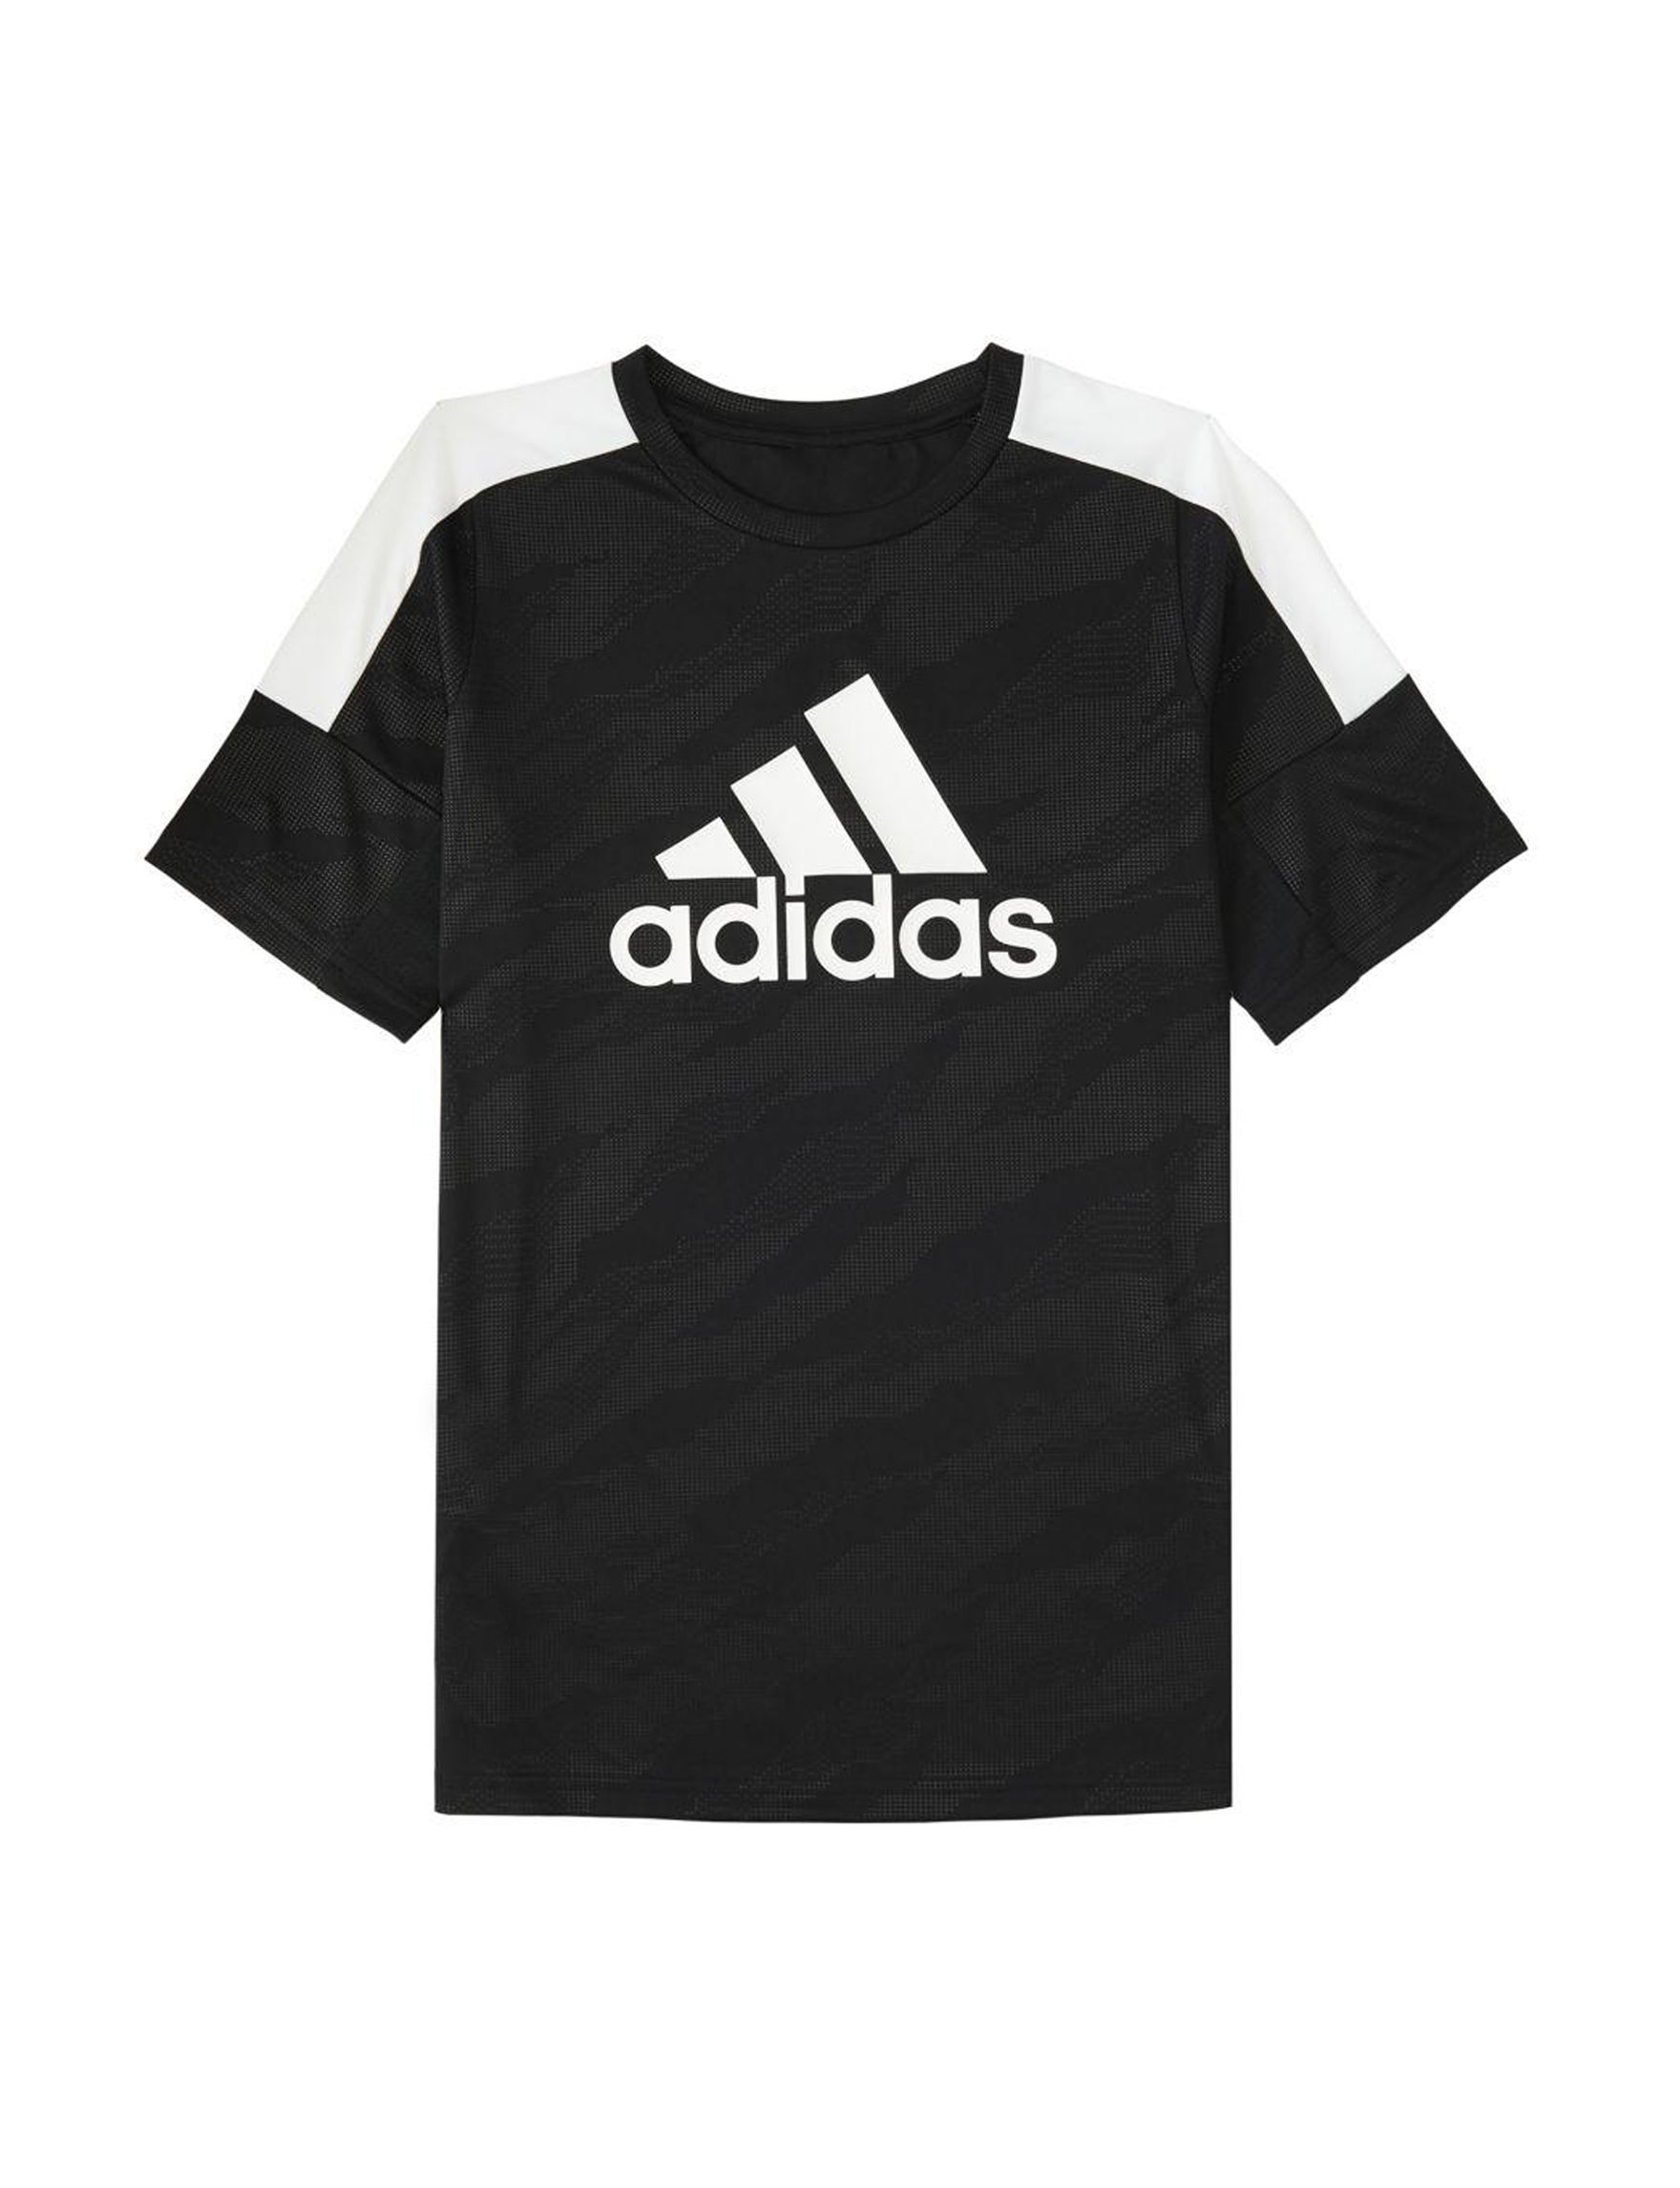 Adidas Black Tees & Tanks